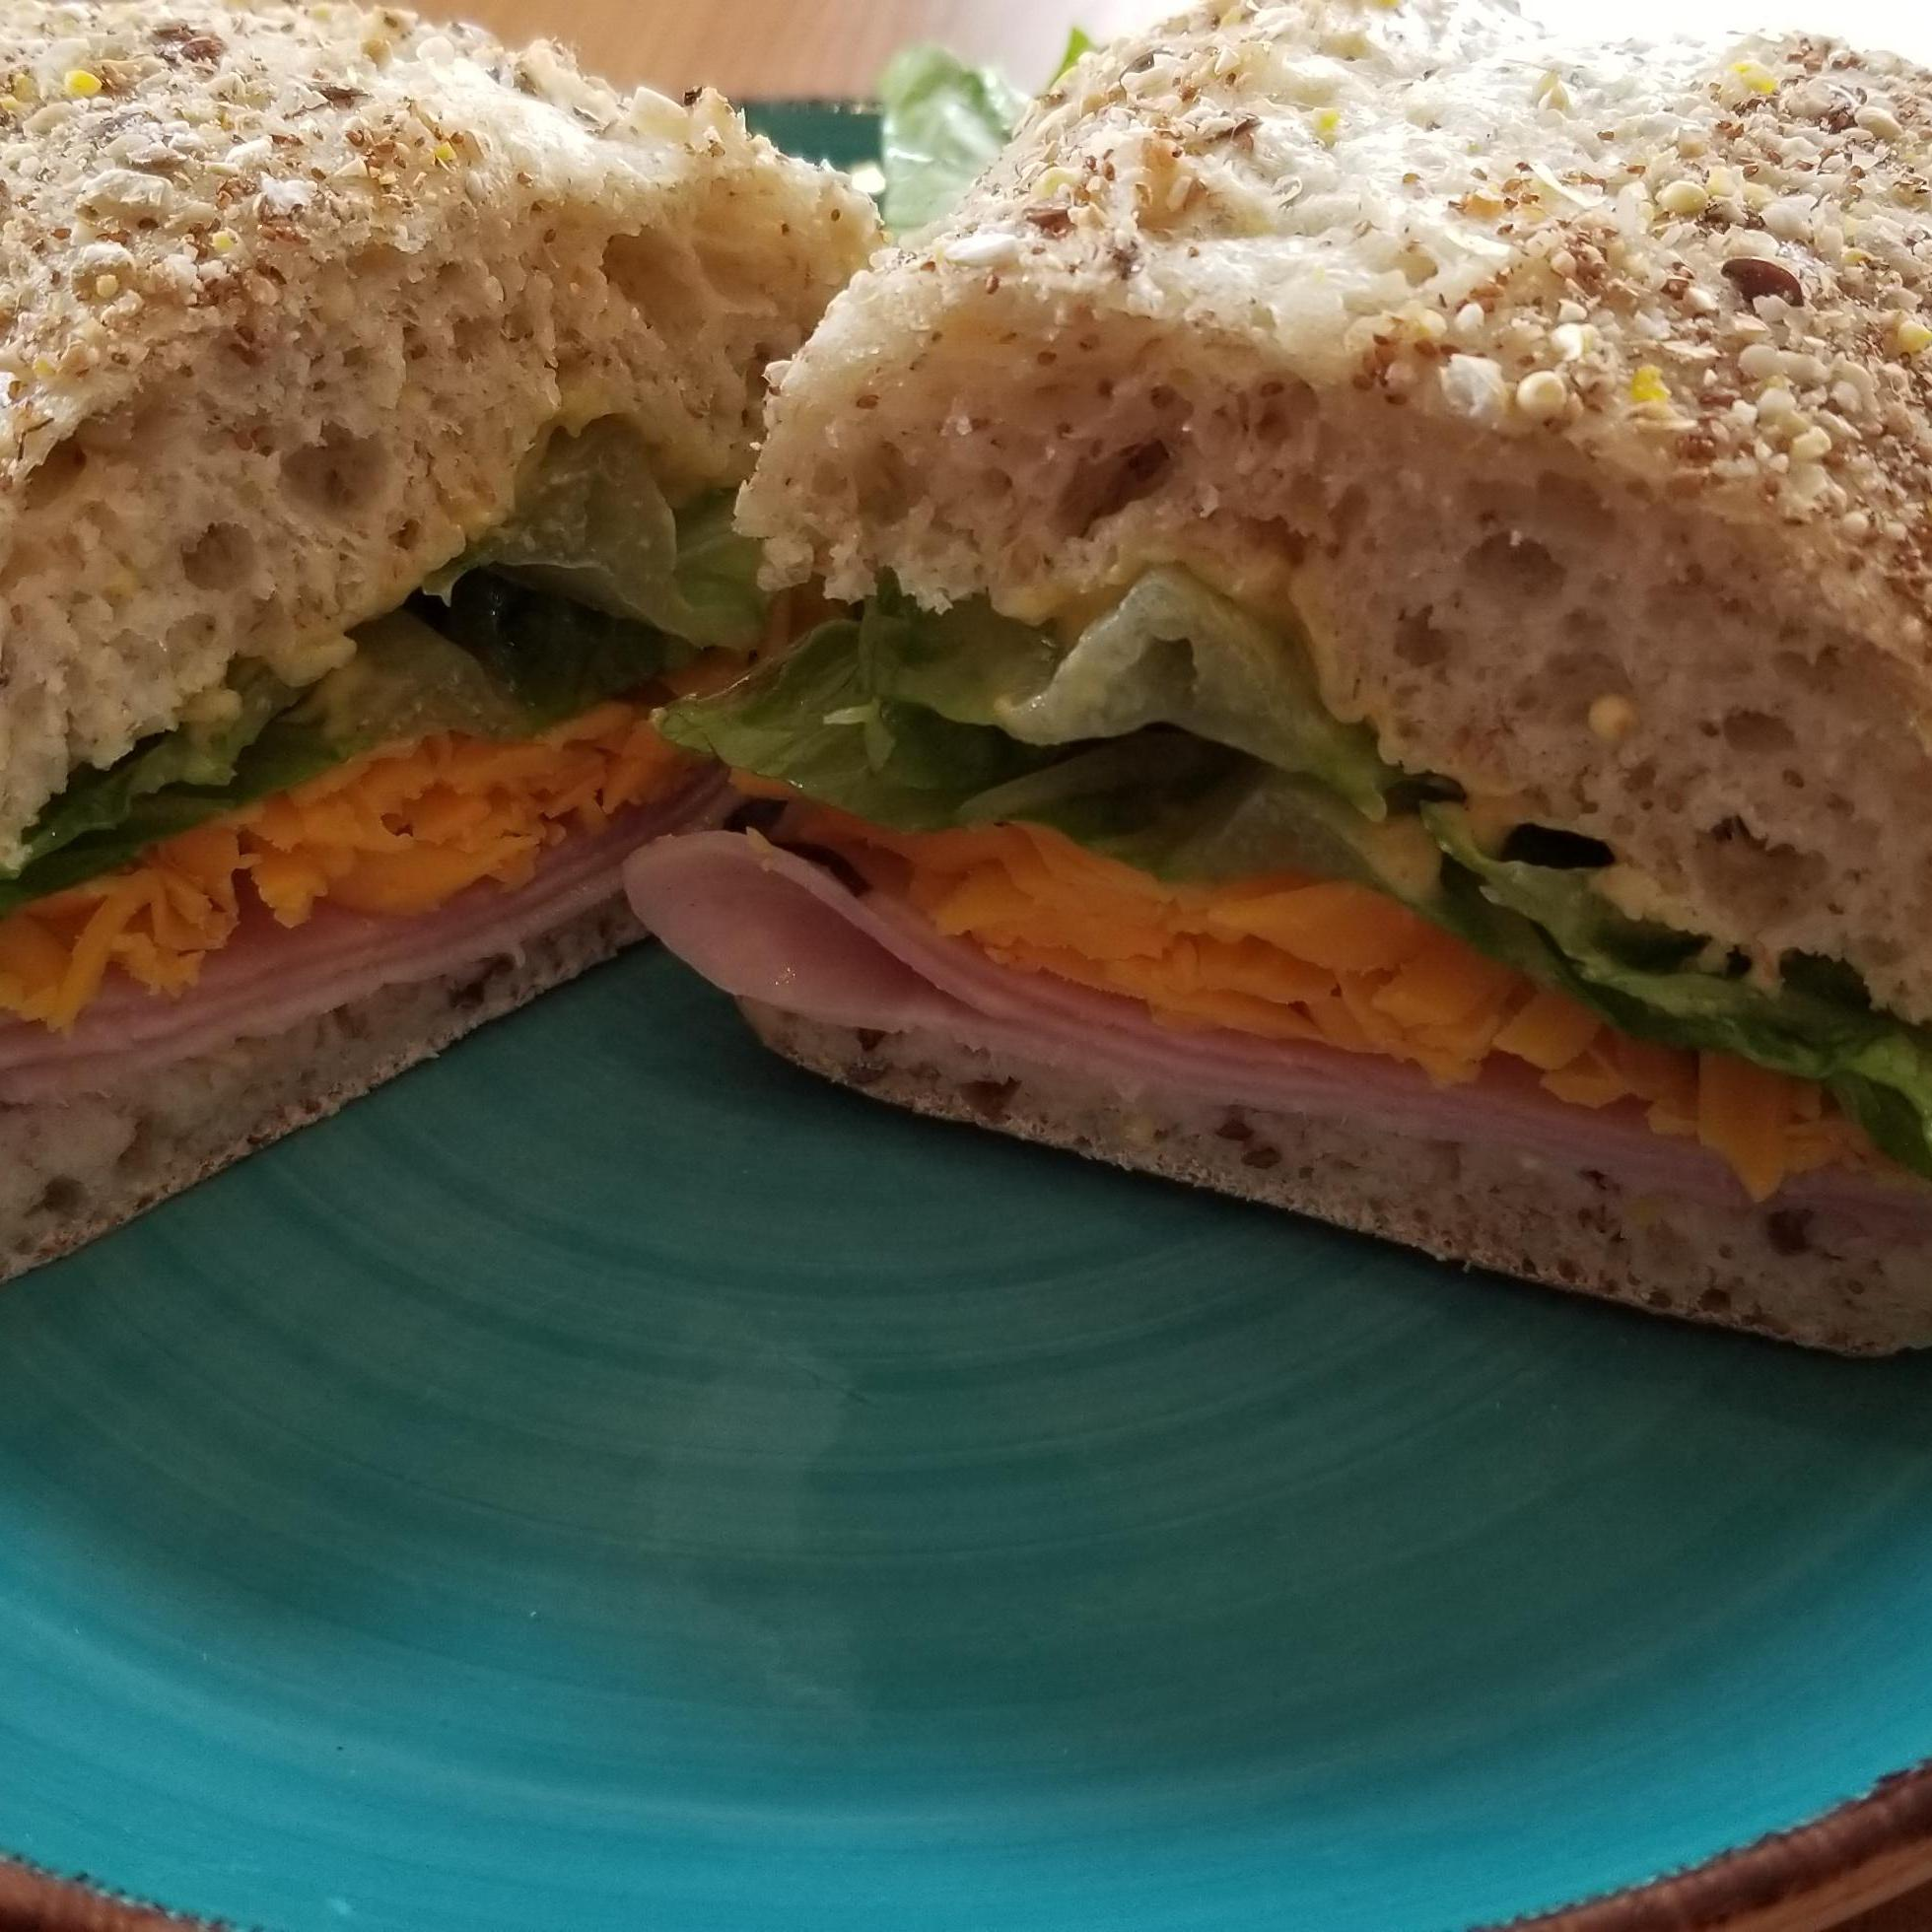 Our Ham and Cheese Sandwich available on White or Multigrain Ciabatta.